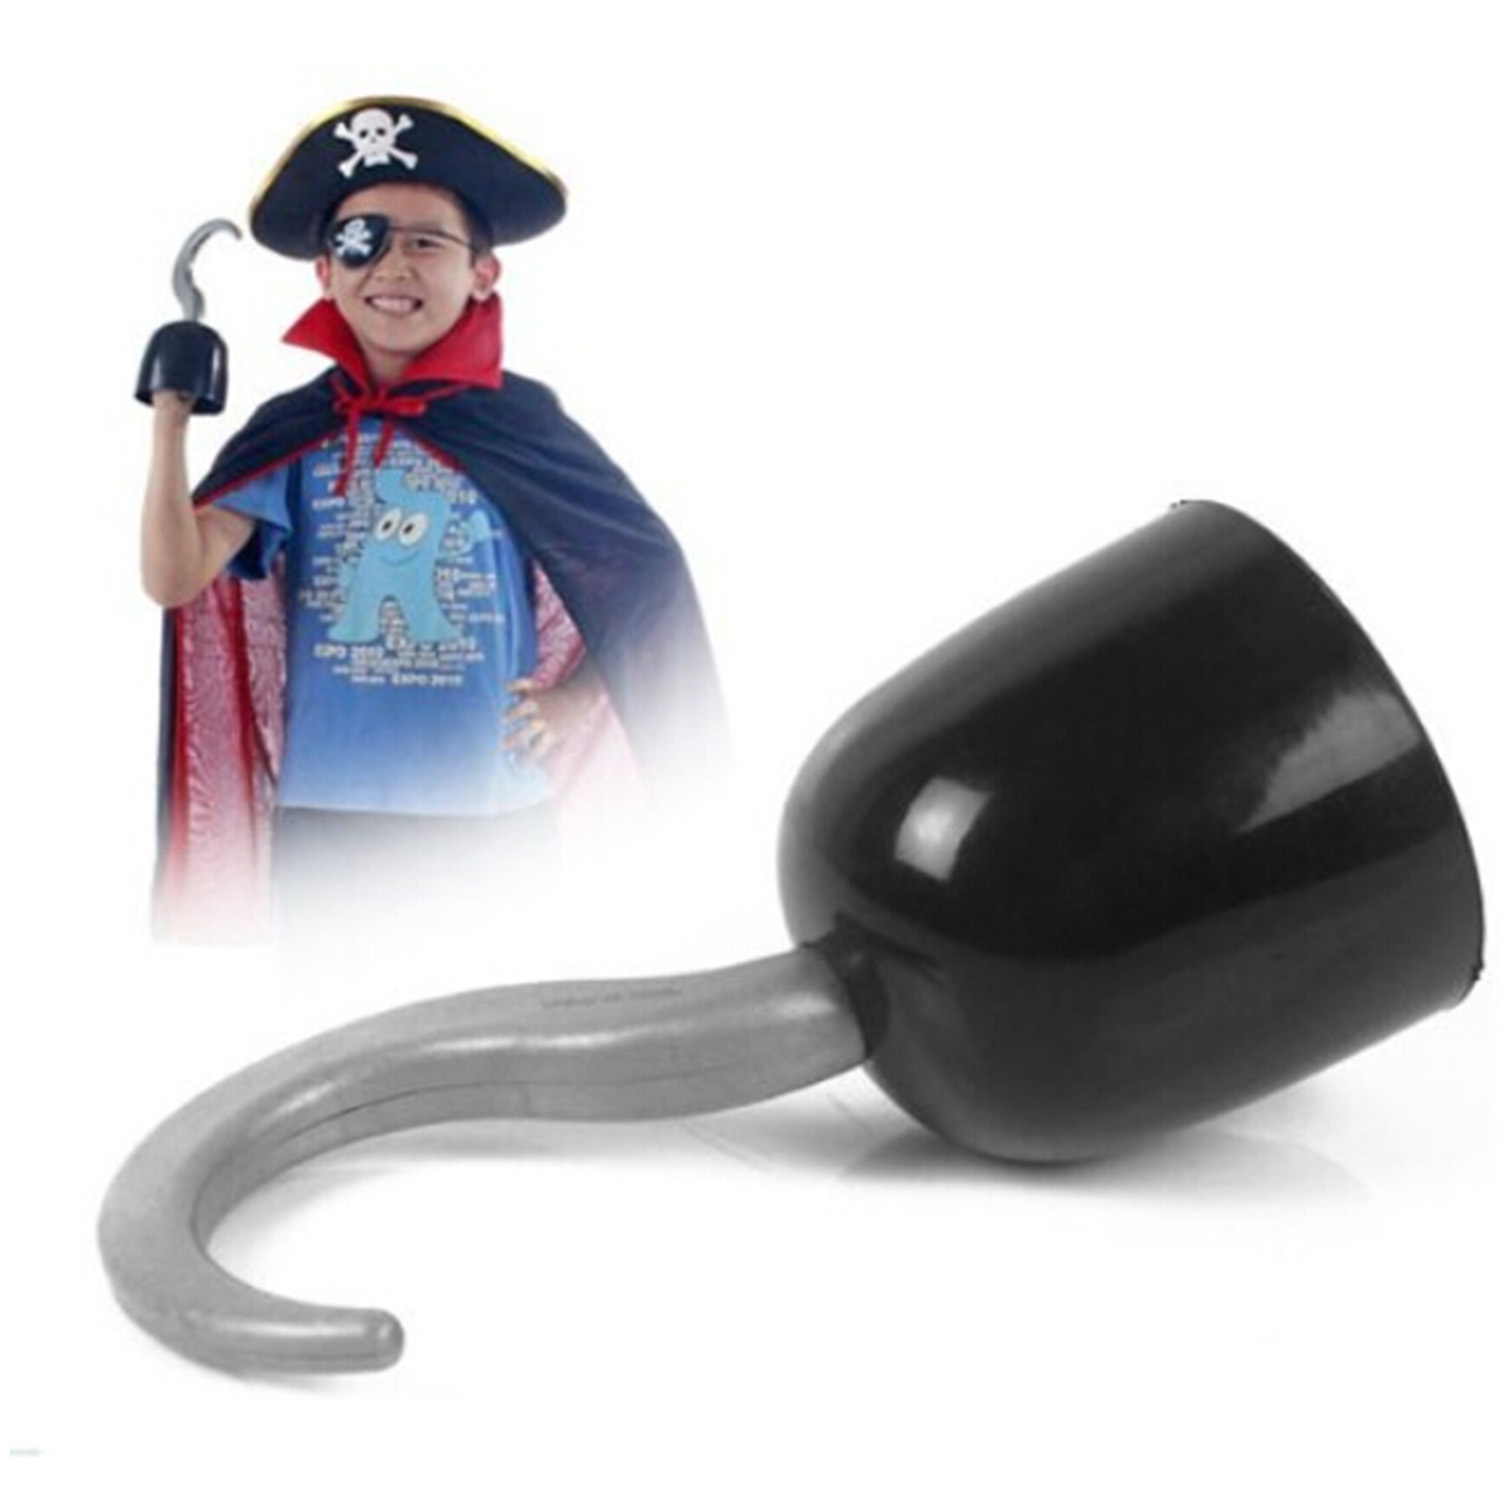 Besegad Kids Plastic Pirate Hook Black Weapon Pirate Ship Captain Crochet Halloween Party Cosplay Pirate Game Props Toy